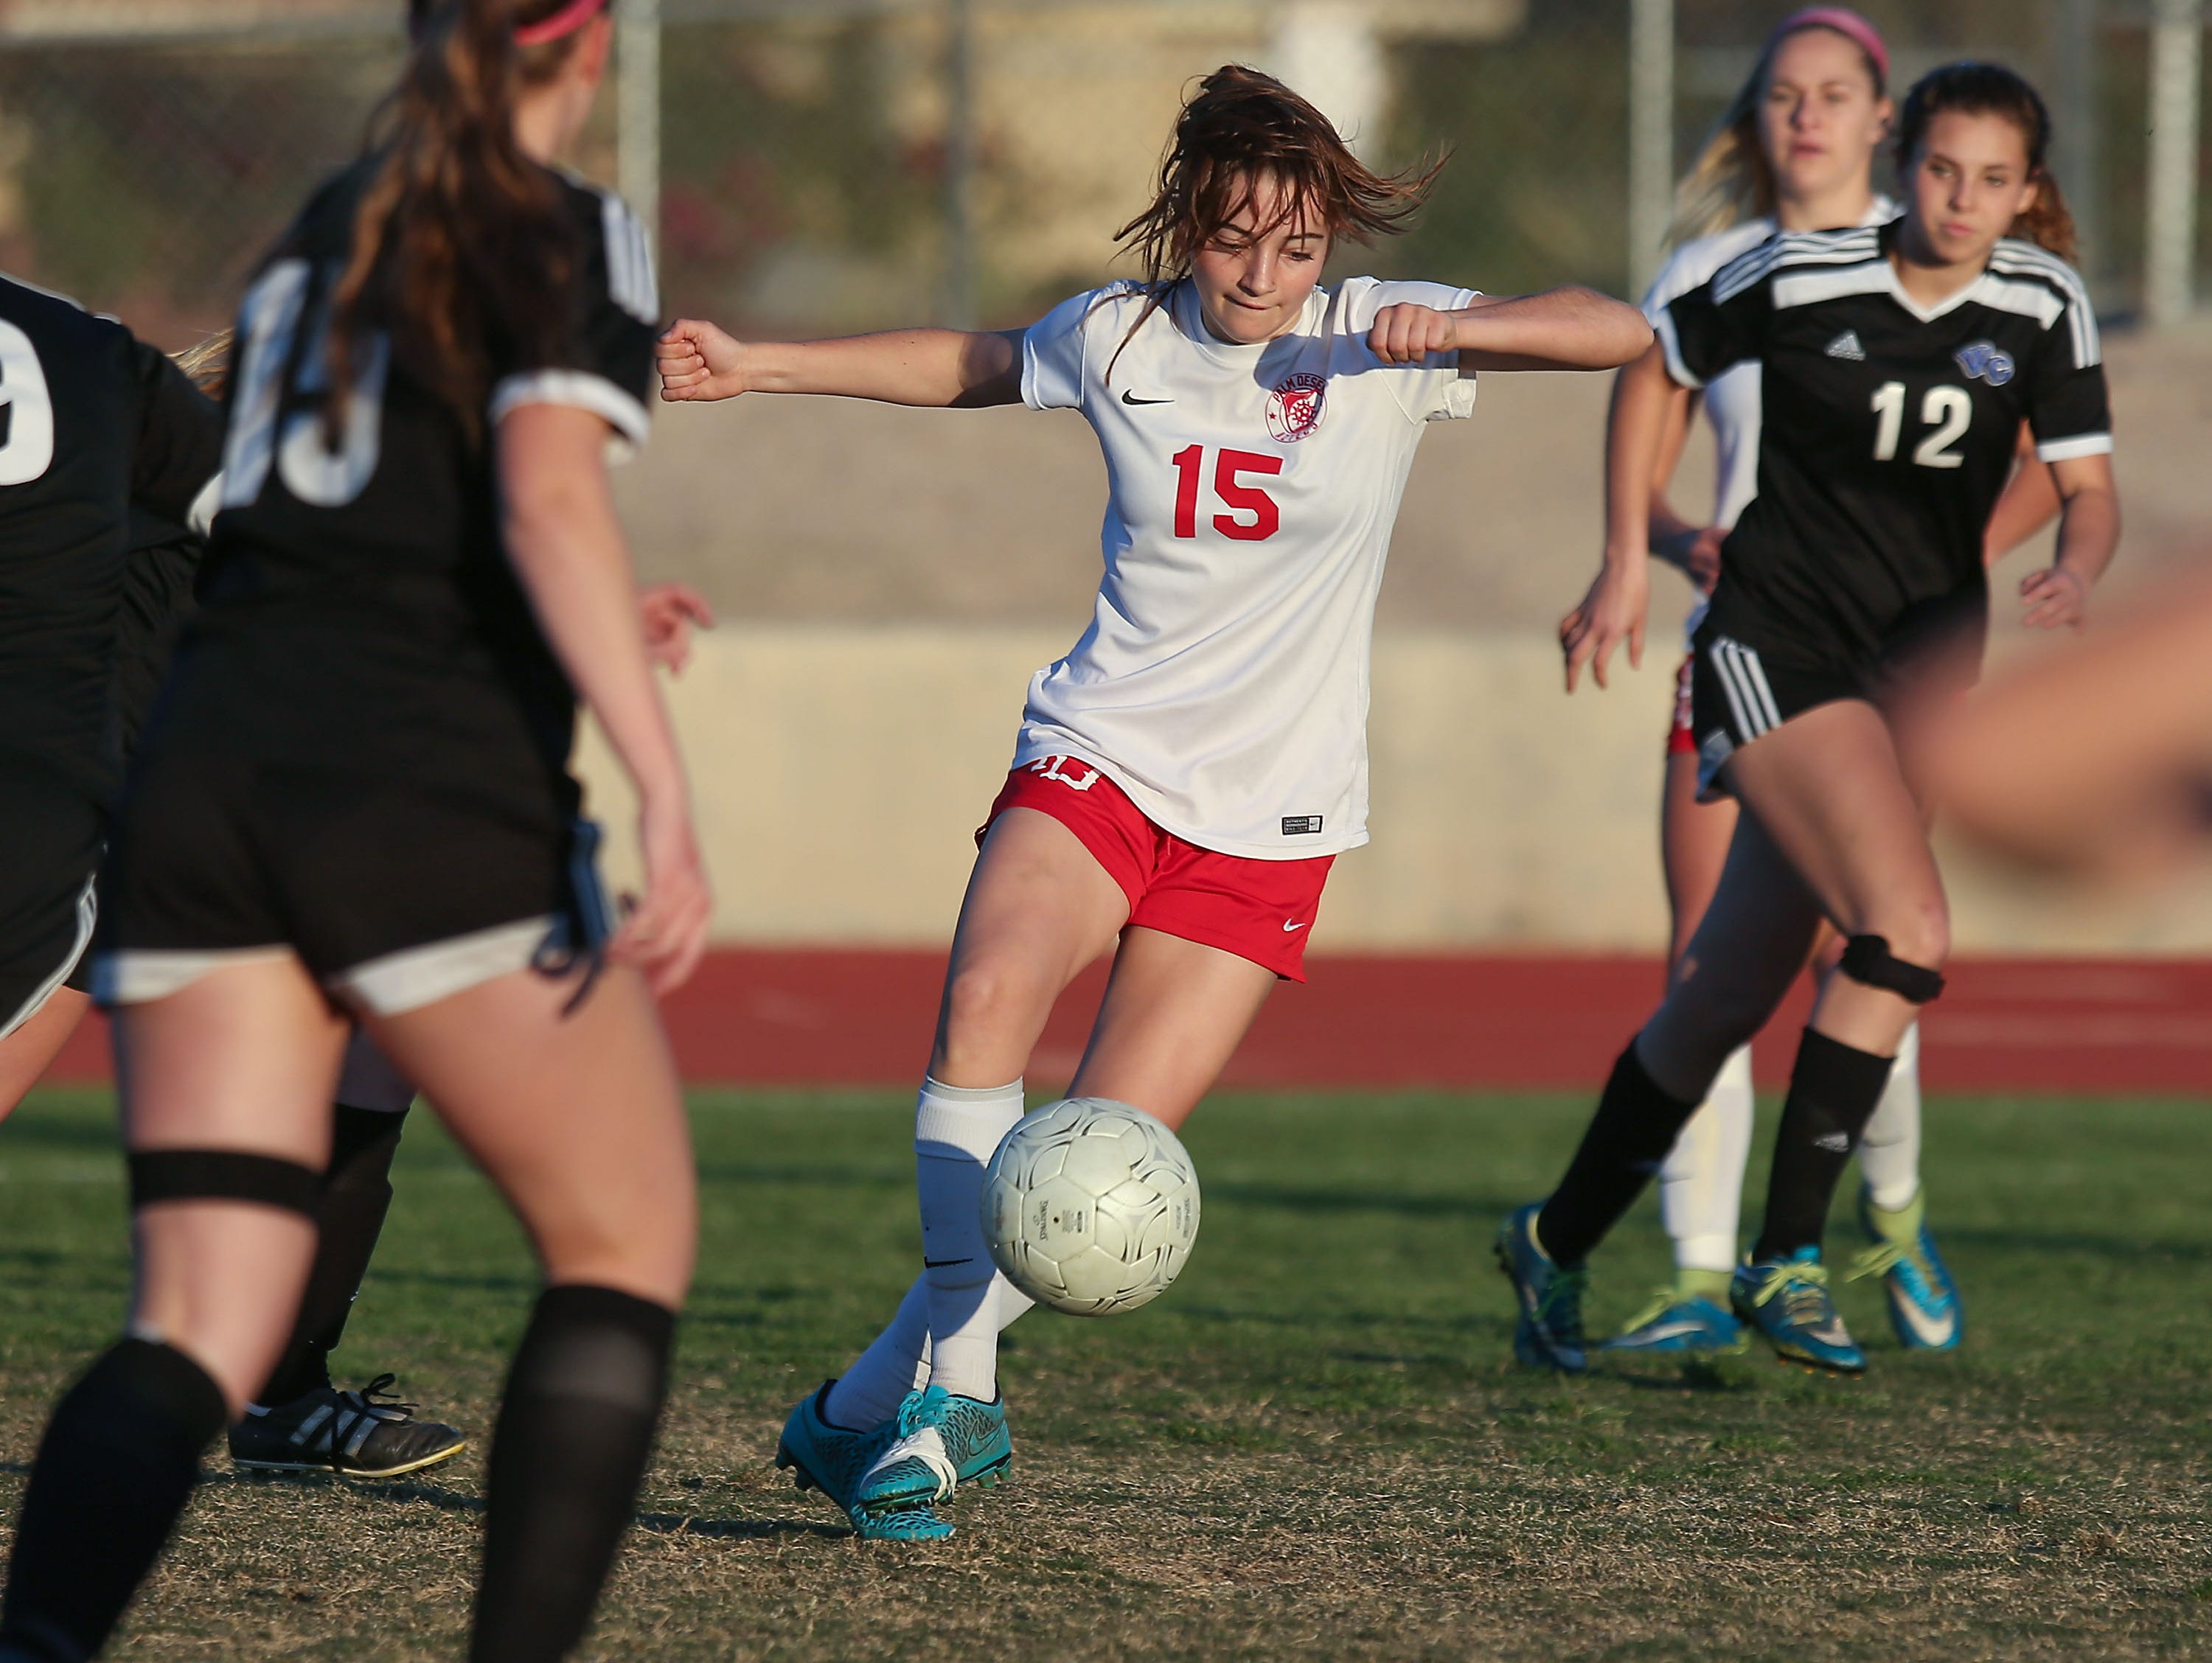 Malia Falk handles the ball for Palm Desert during their CIF quarterfinal victory over Western Christian, February 24, 2017.